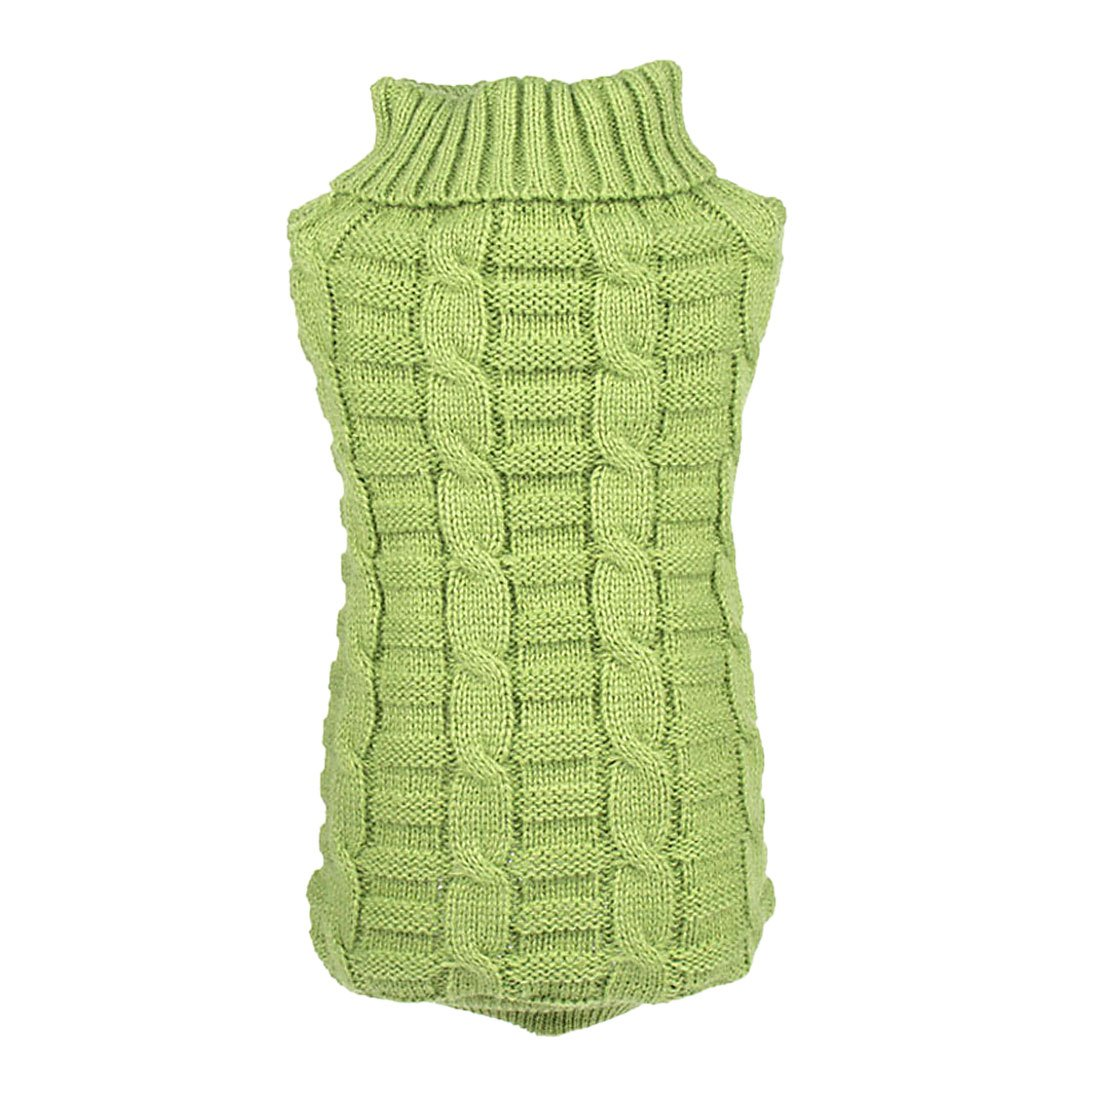 uxcell Elastic Soft Dog Sweater Cable Knit Pet Clothes, Green, L